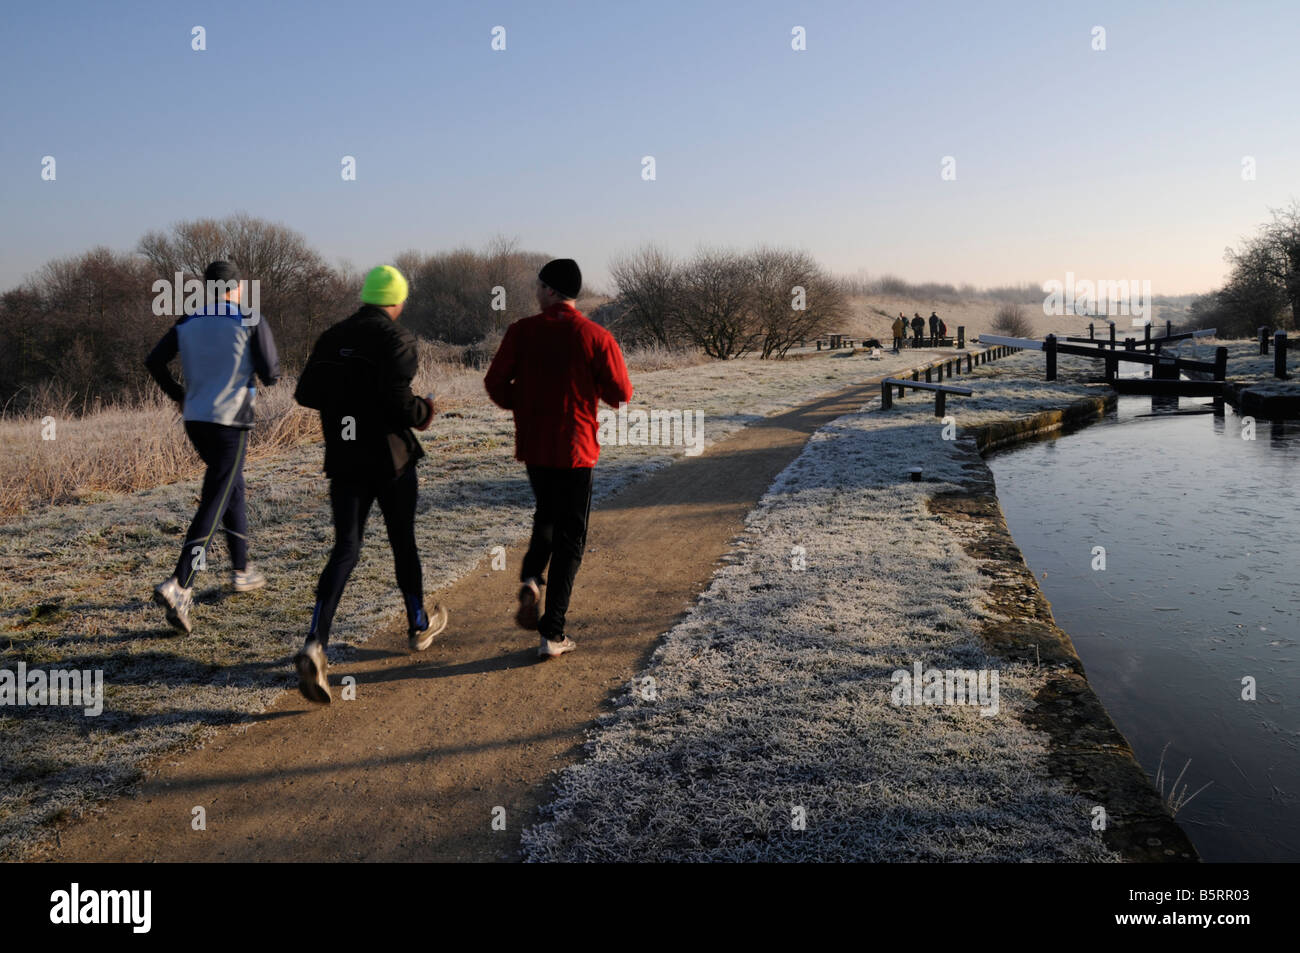 Three Joggers running along the towpath Chesterfield Canal Derbyshire England UK - Stock Image